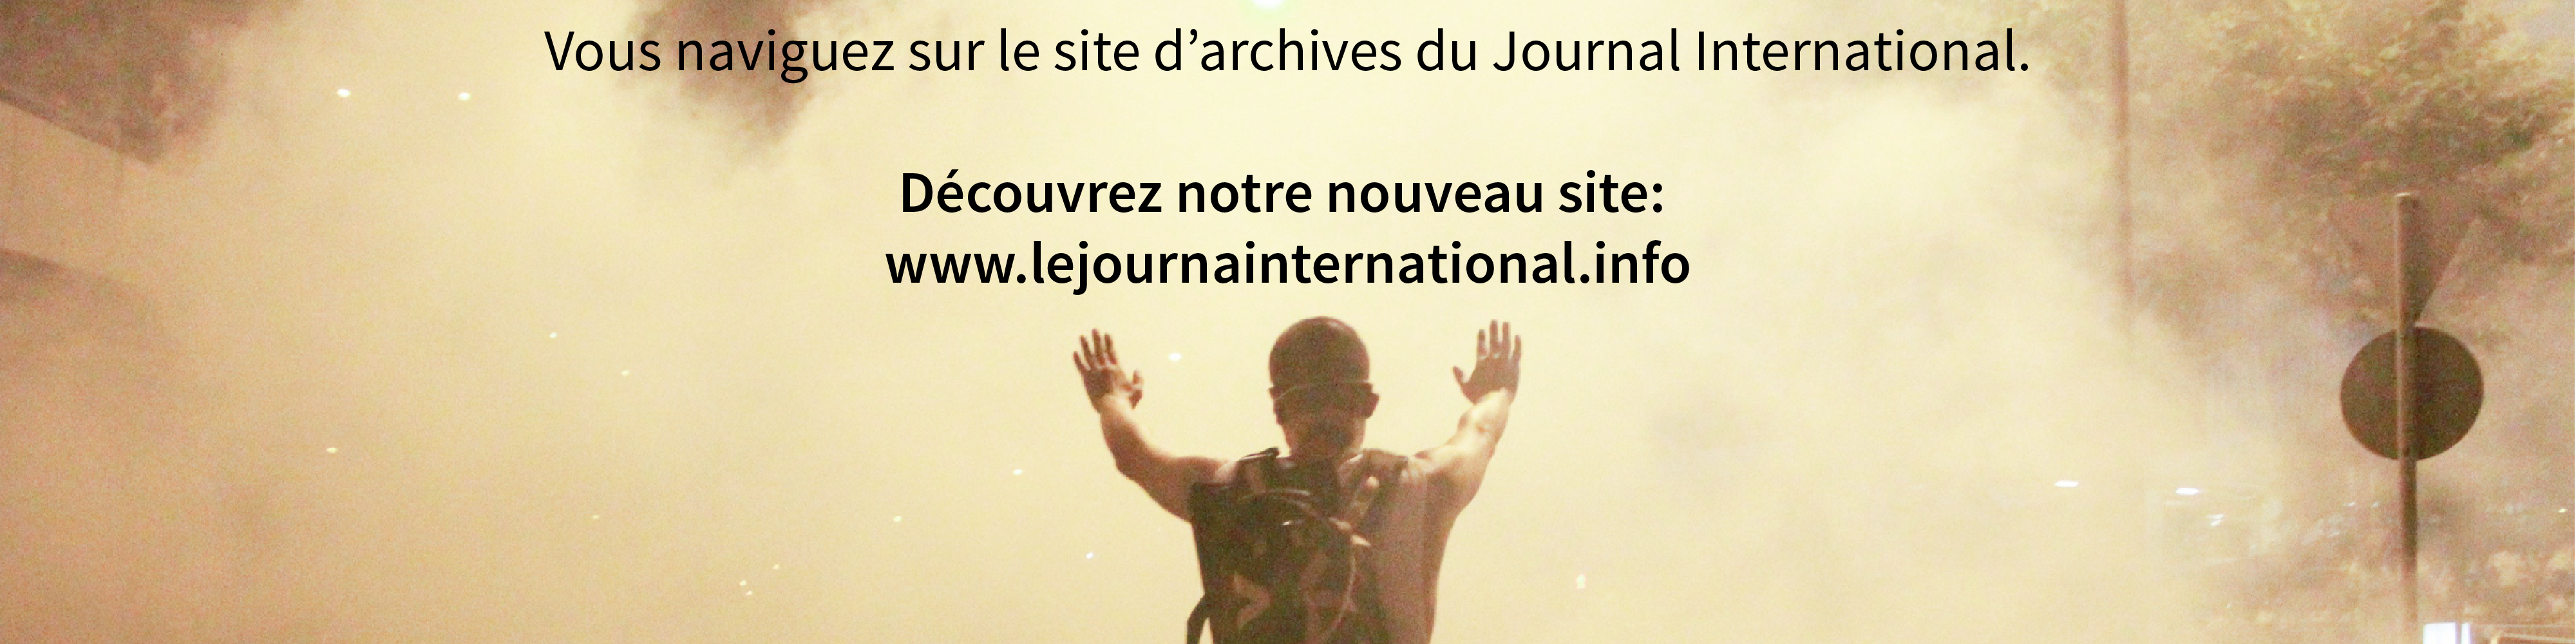 Vous consultez le site d'archives du Journal International